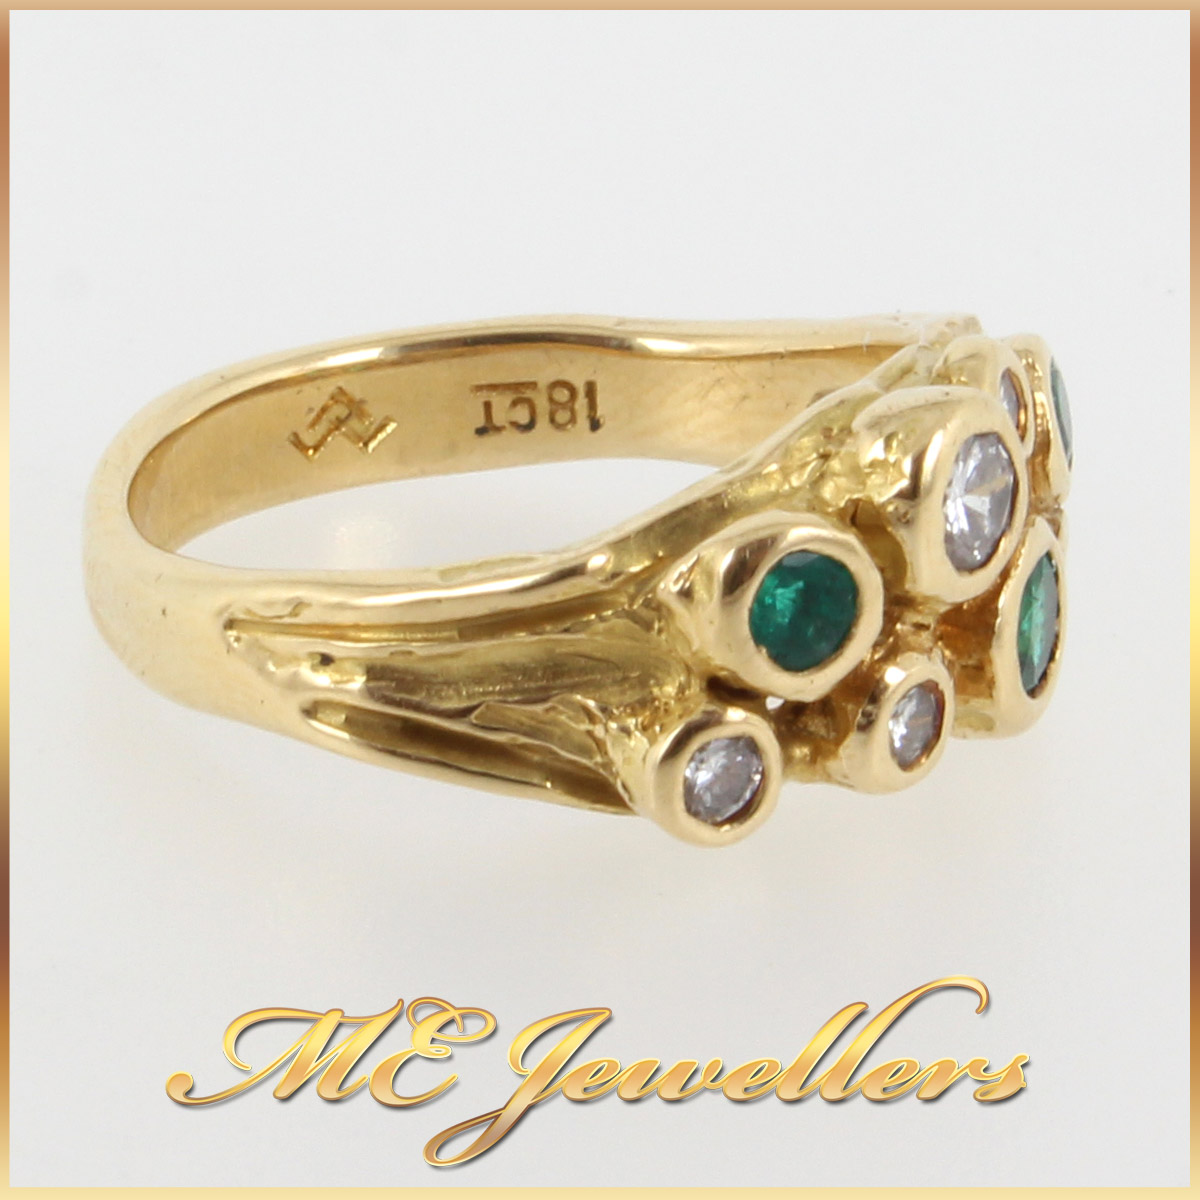 952 Emerald and Diamond Dress Ring In 18K YG side 1